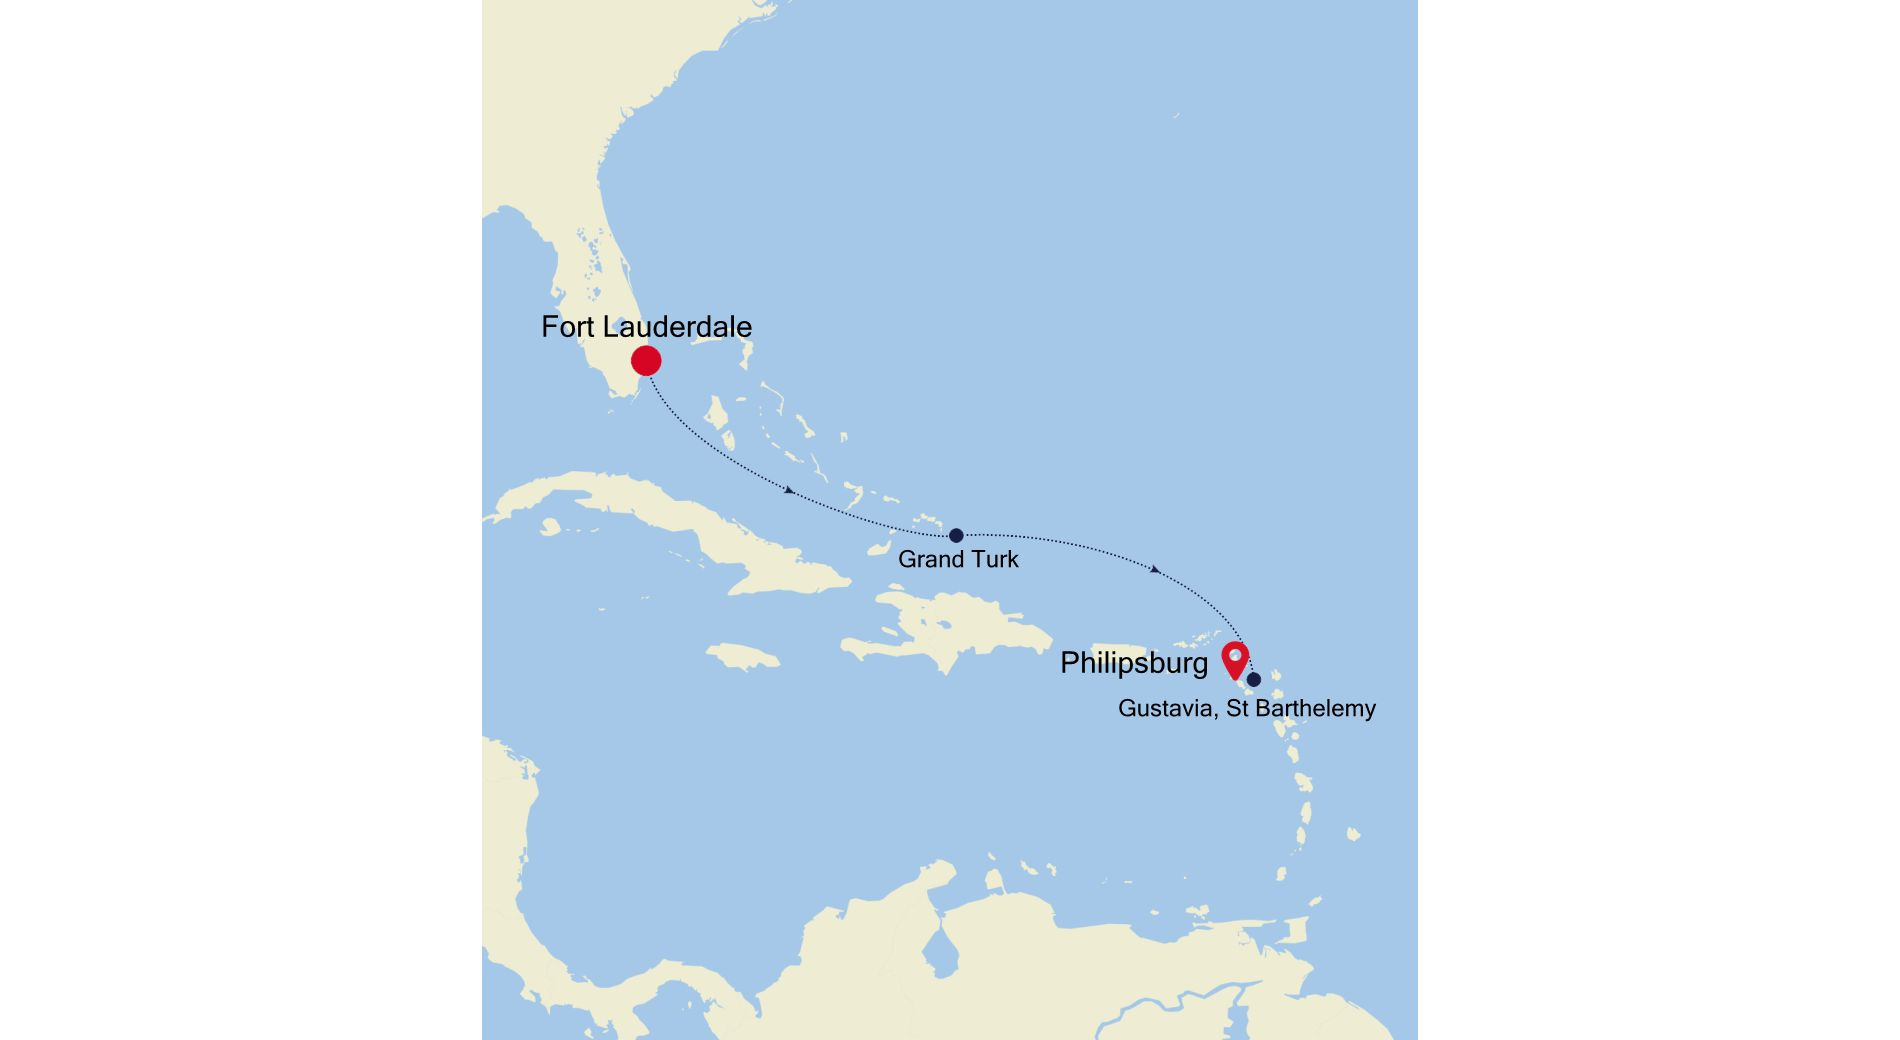 3934C - Fort Lauderdale to Philipsburg